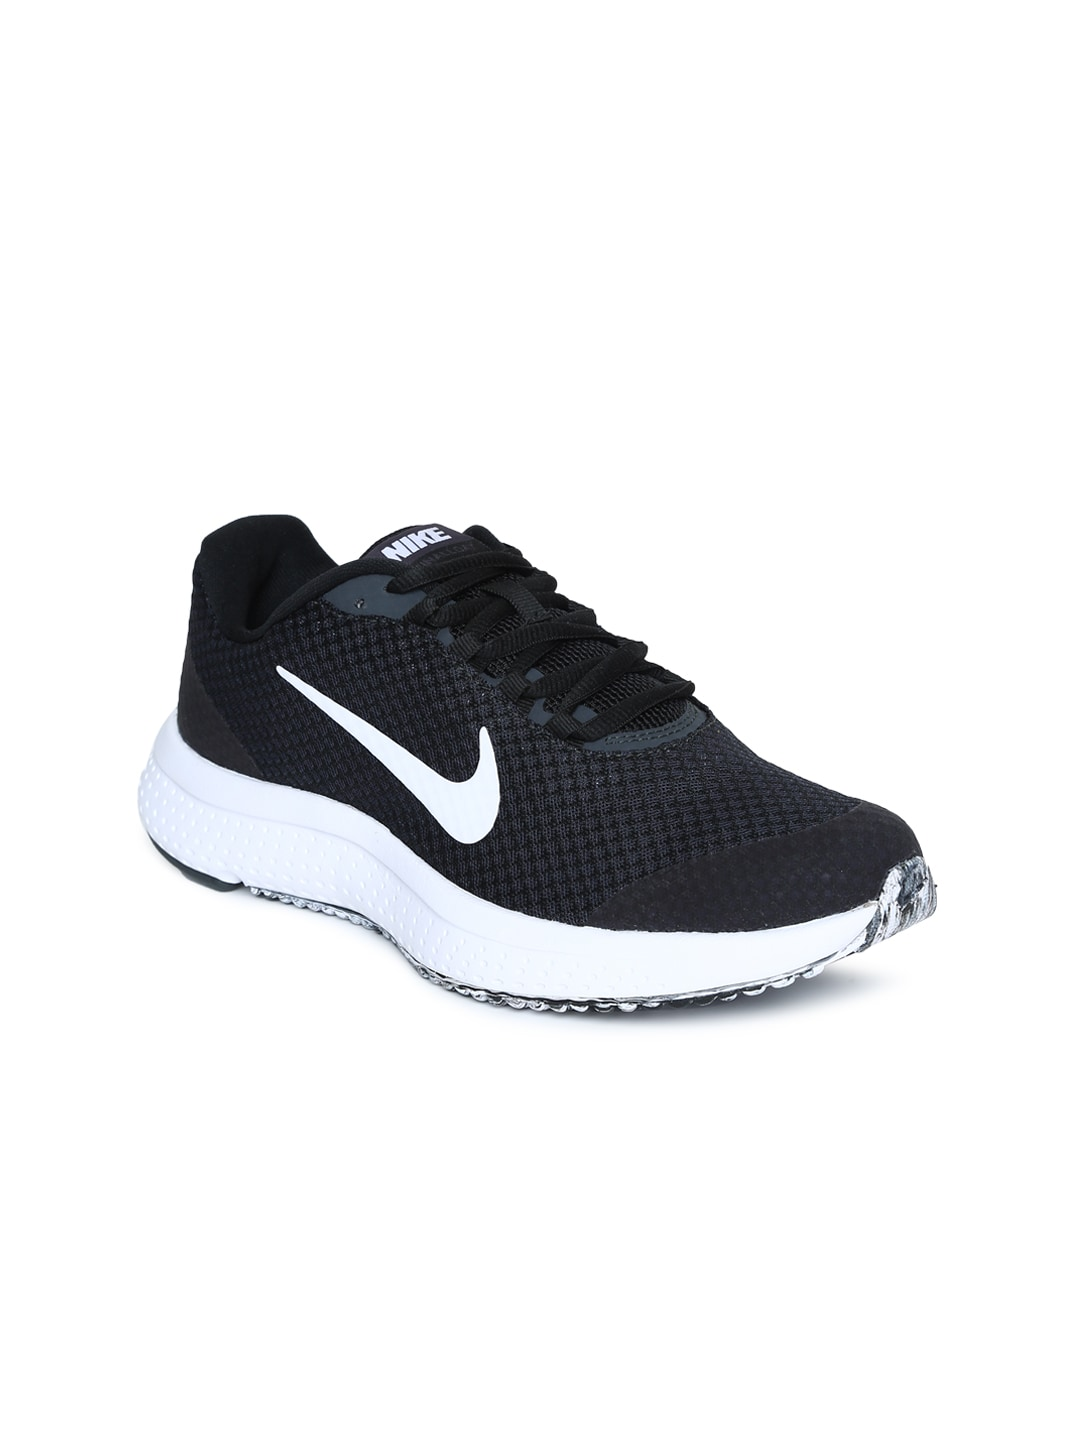 b26b682863834 Nike Running Shoes - Buy Nike Running Shoes Online